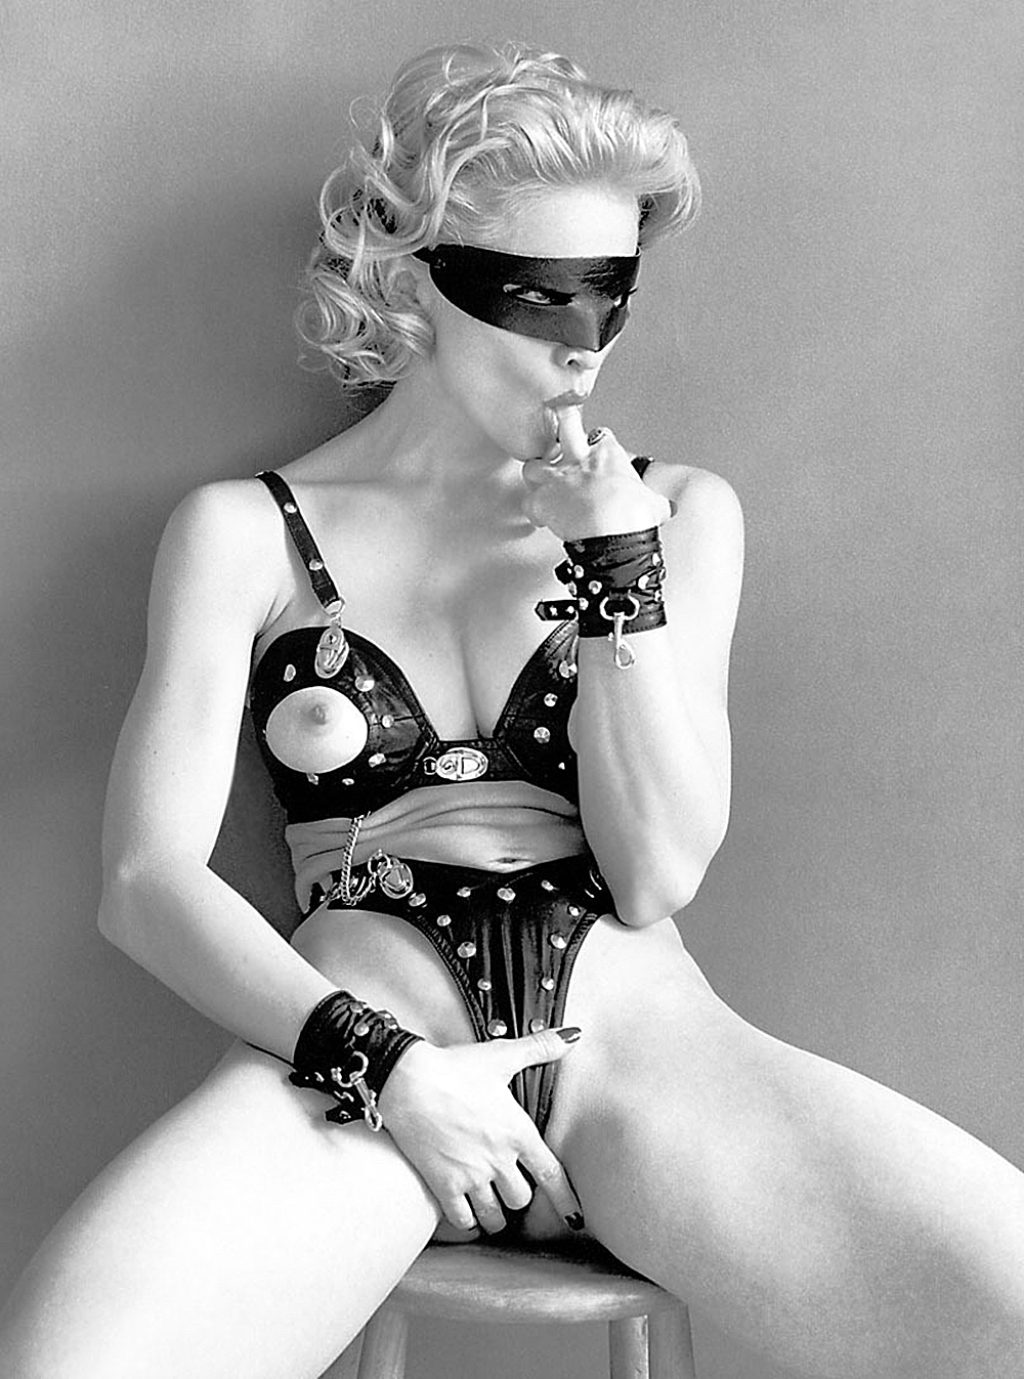 Photograph of Madonna-Dominatrix-Wearing A Mask-Holding Her Crotch and Sucking Her Middle Finger